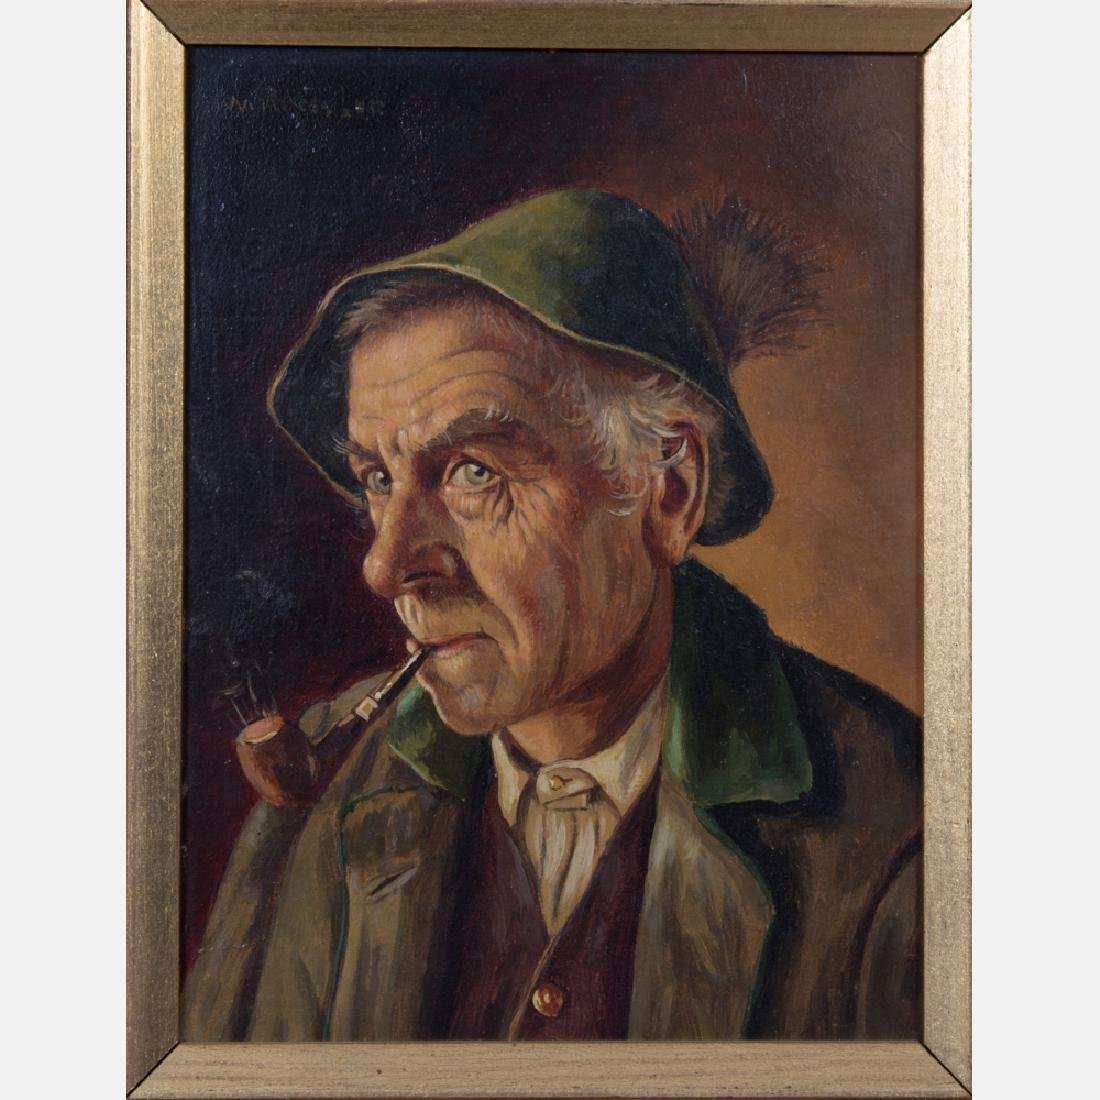 Walter Roessler (1893-1960) Portrait of a Man with